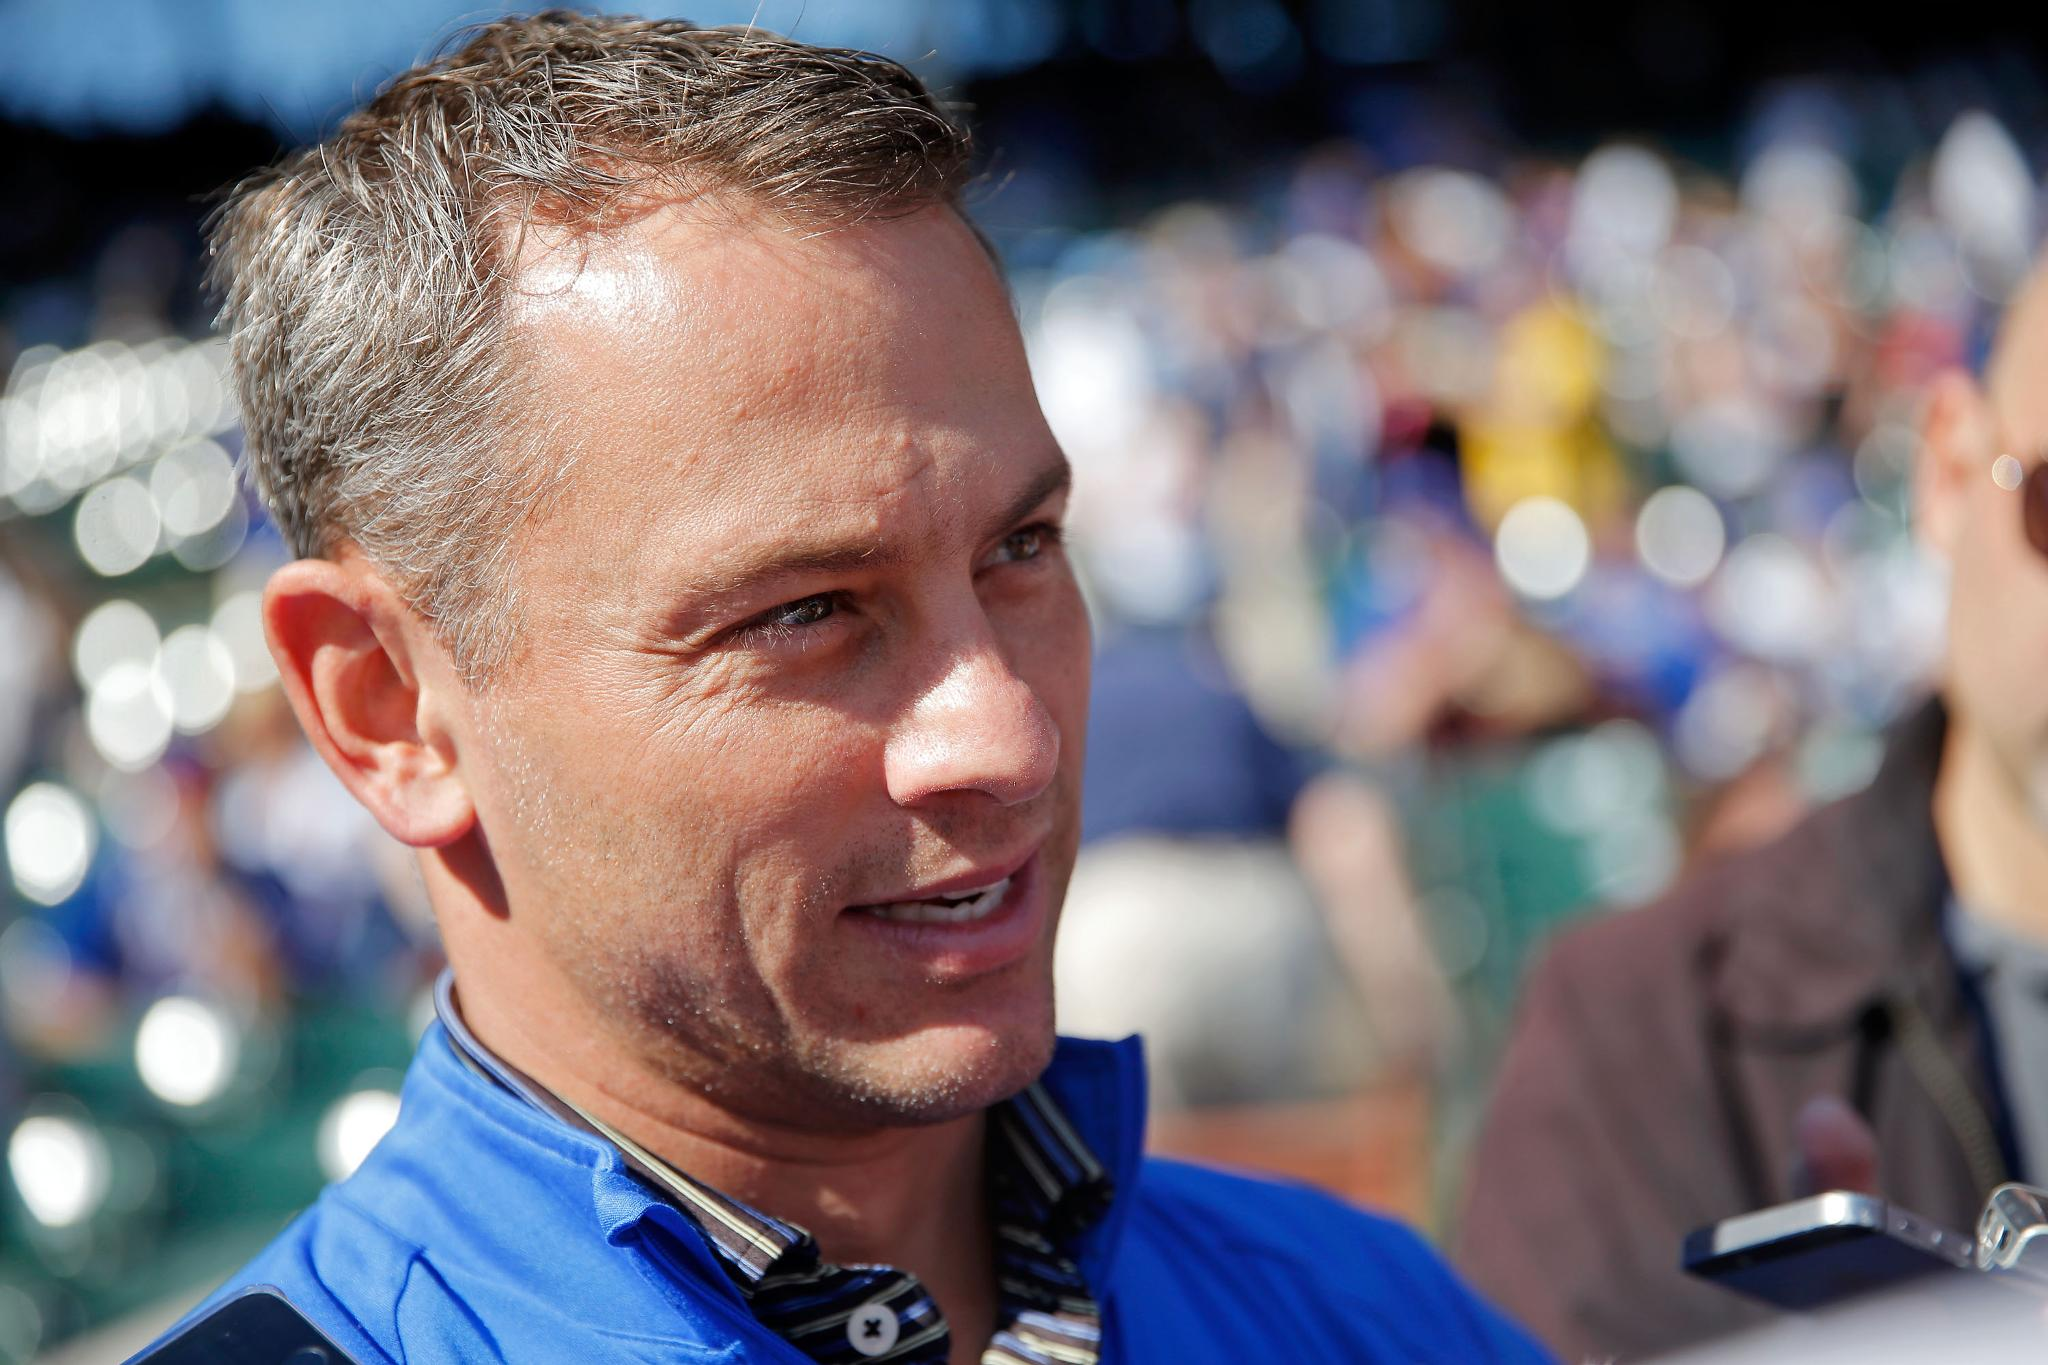 Happy birthday to #Cubs general manager Jed Hoyer! https://t.co/jw346CpyFO